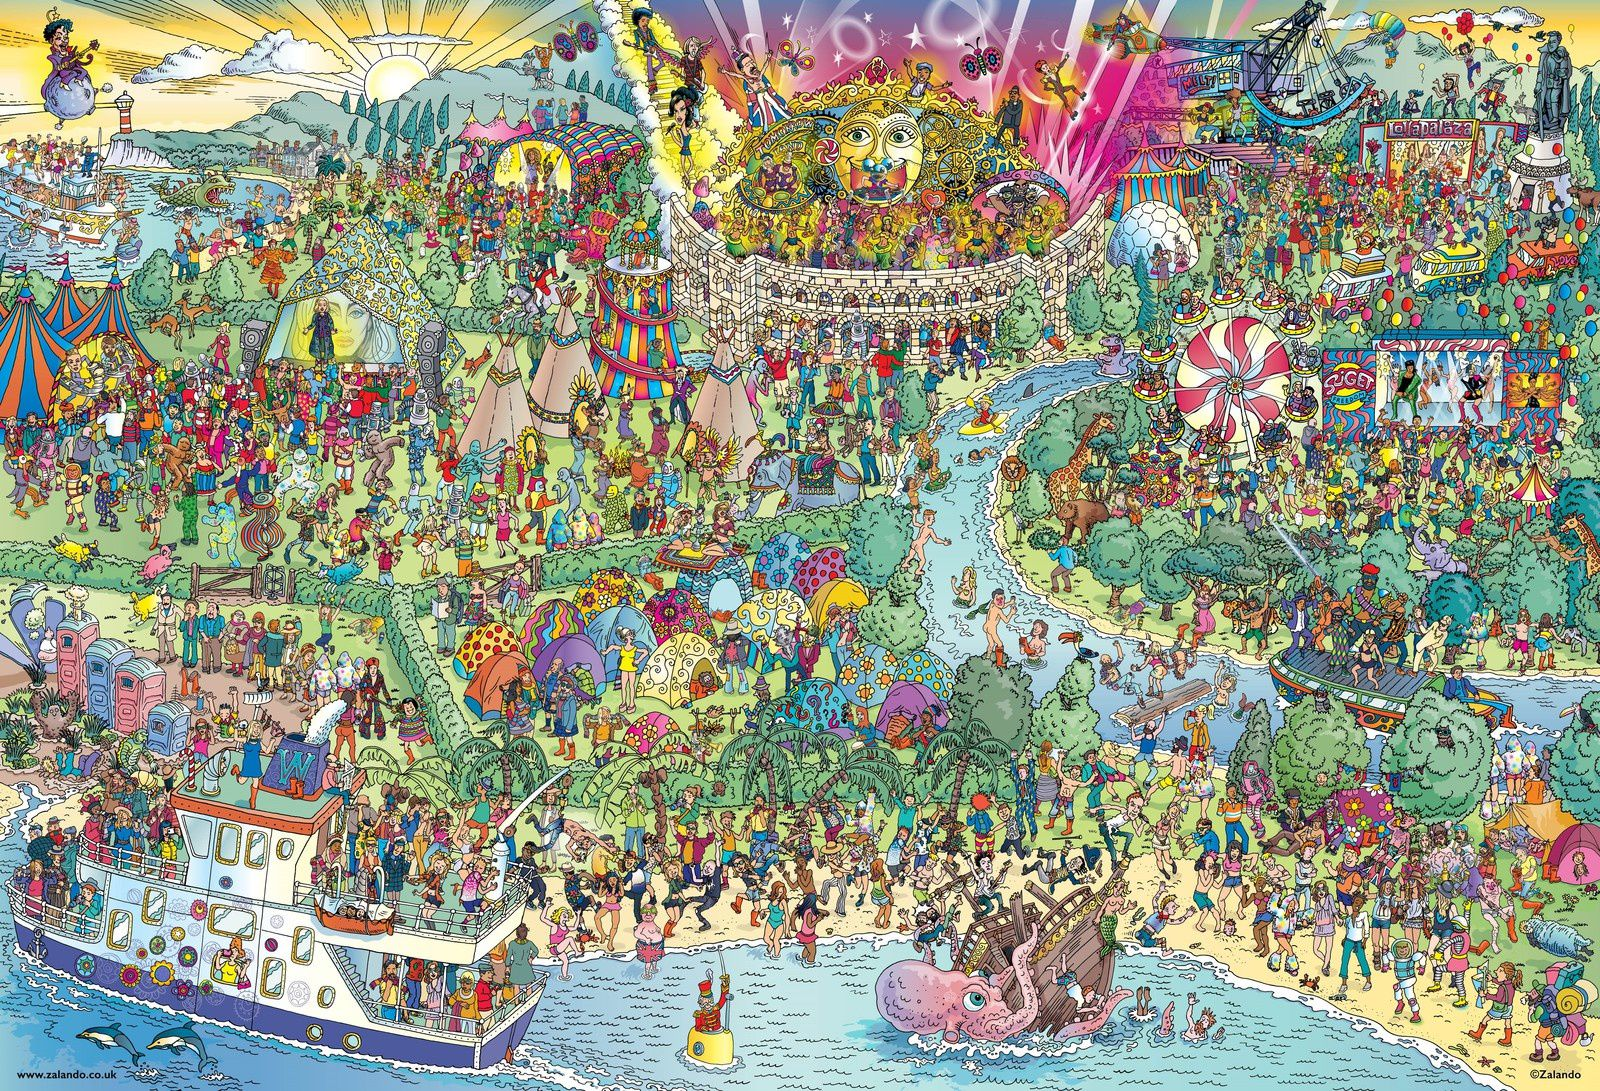 Daft Punk have been given the 'Where's Wally?' treatment